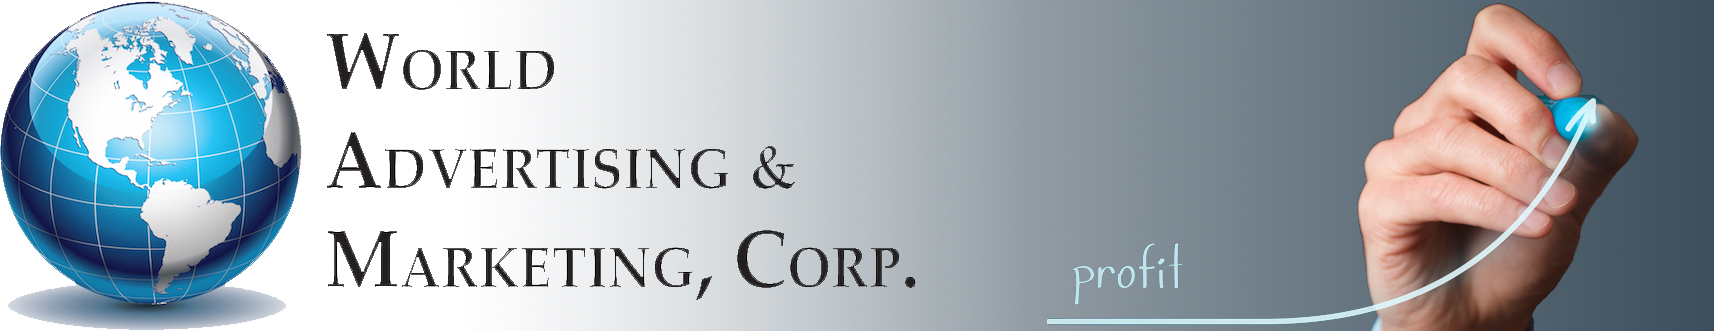 World Advertising & Marketing Corp